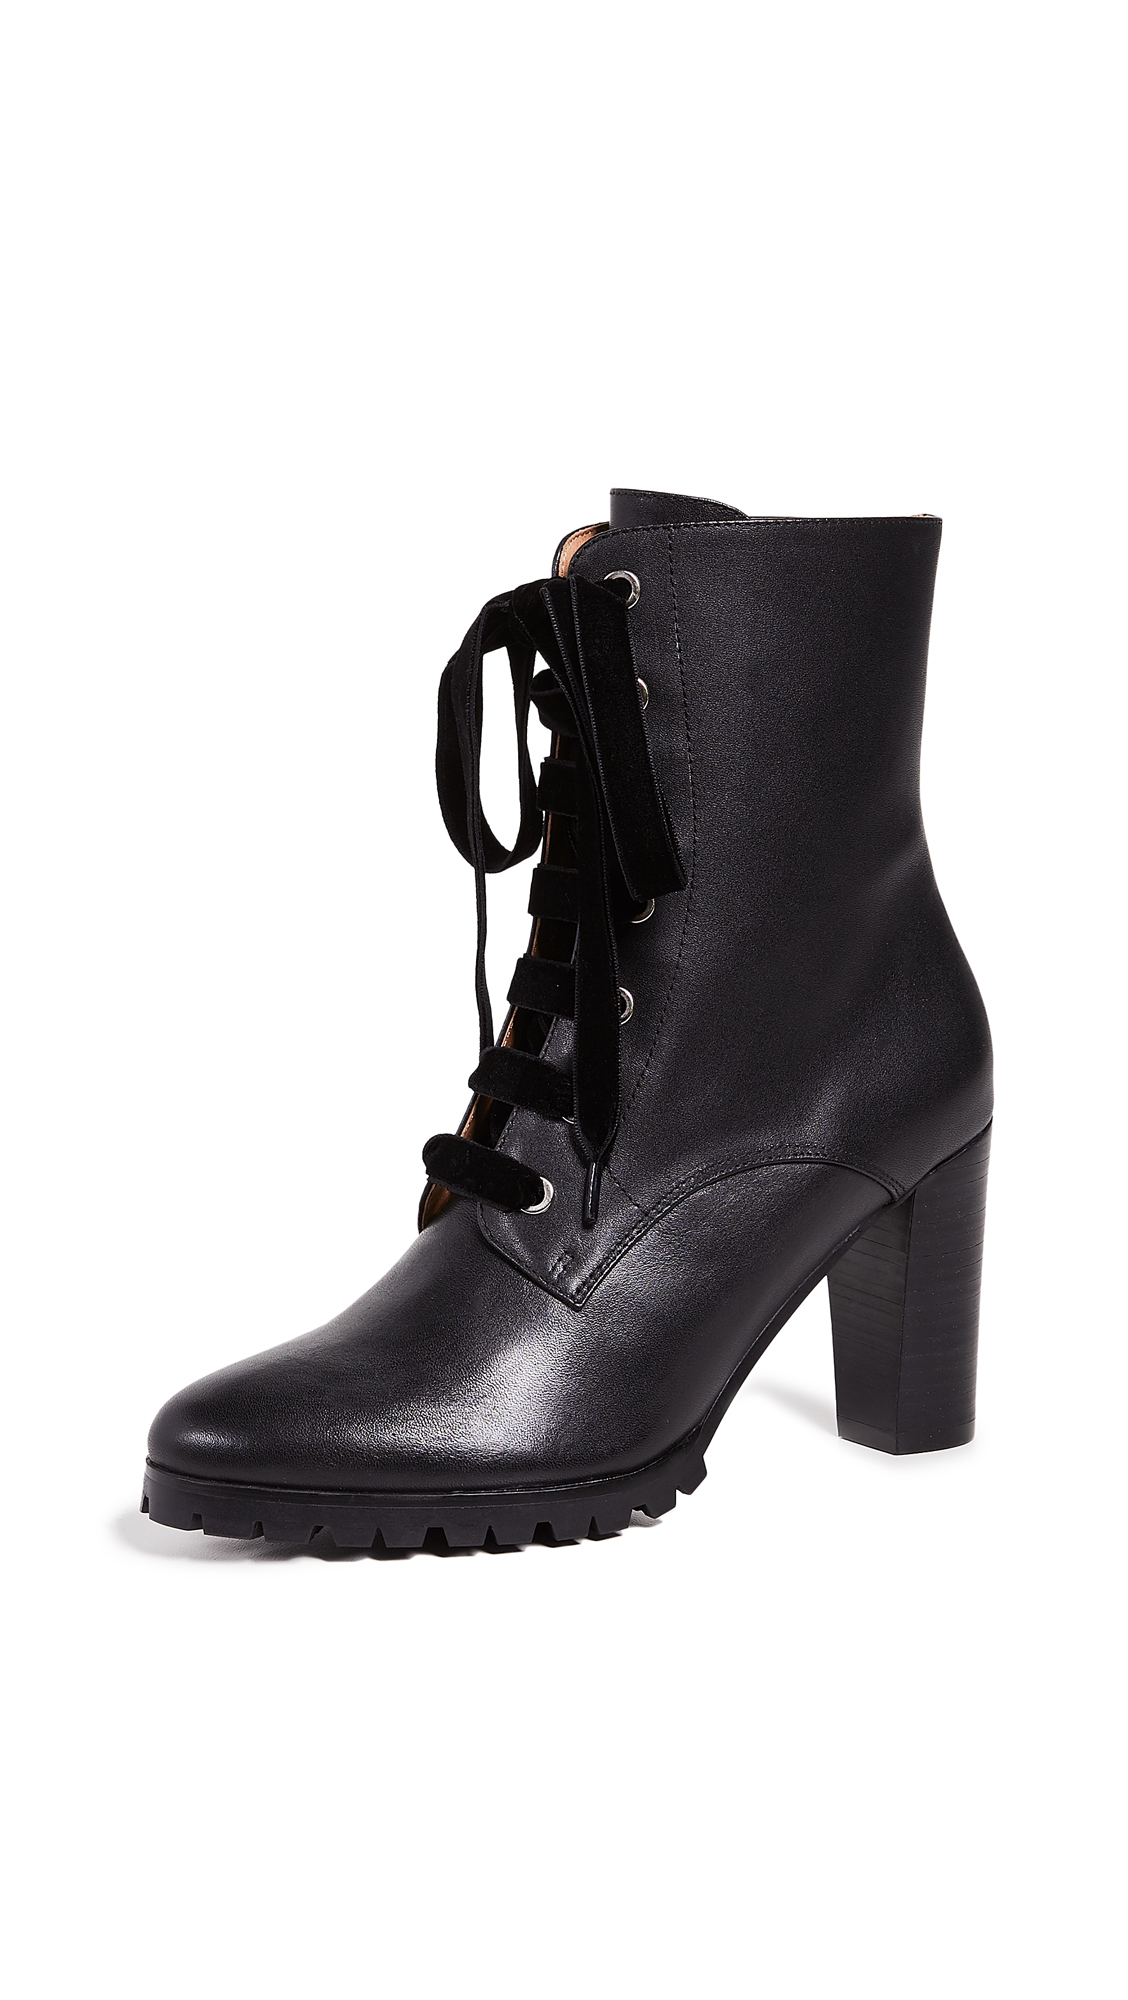 Matiko Emma Lace Up Boots - Black